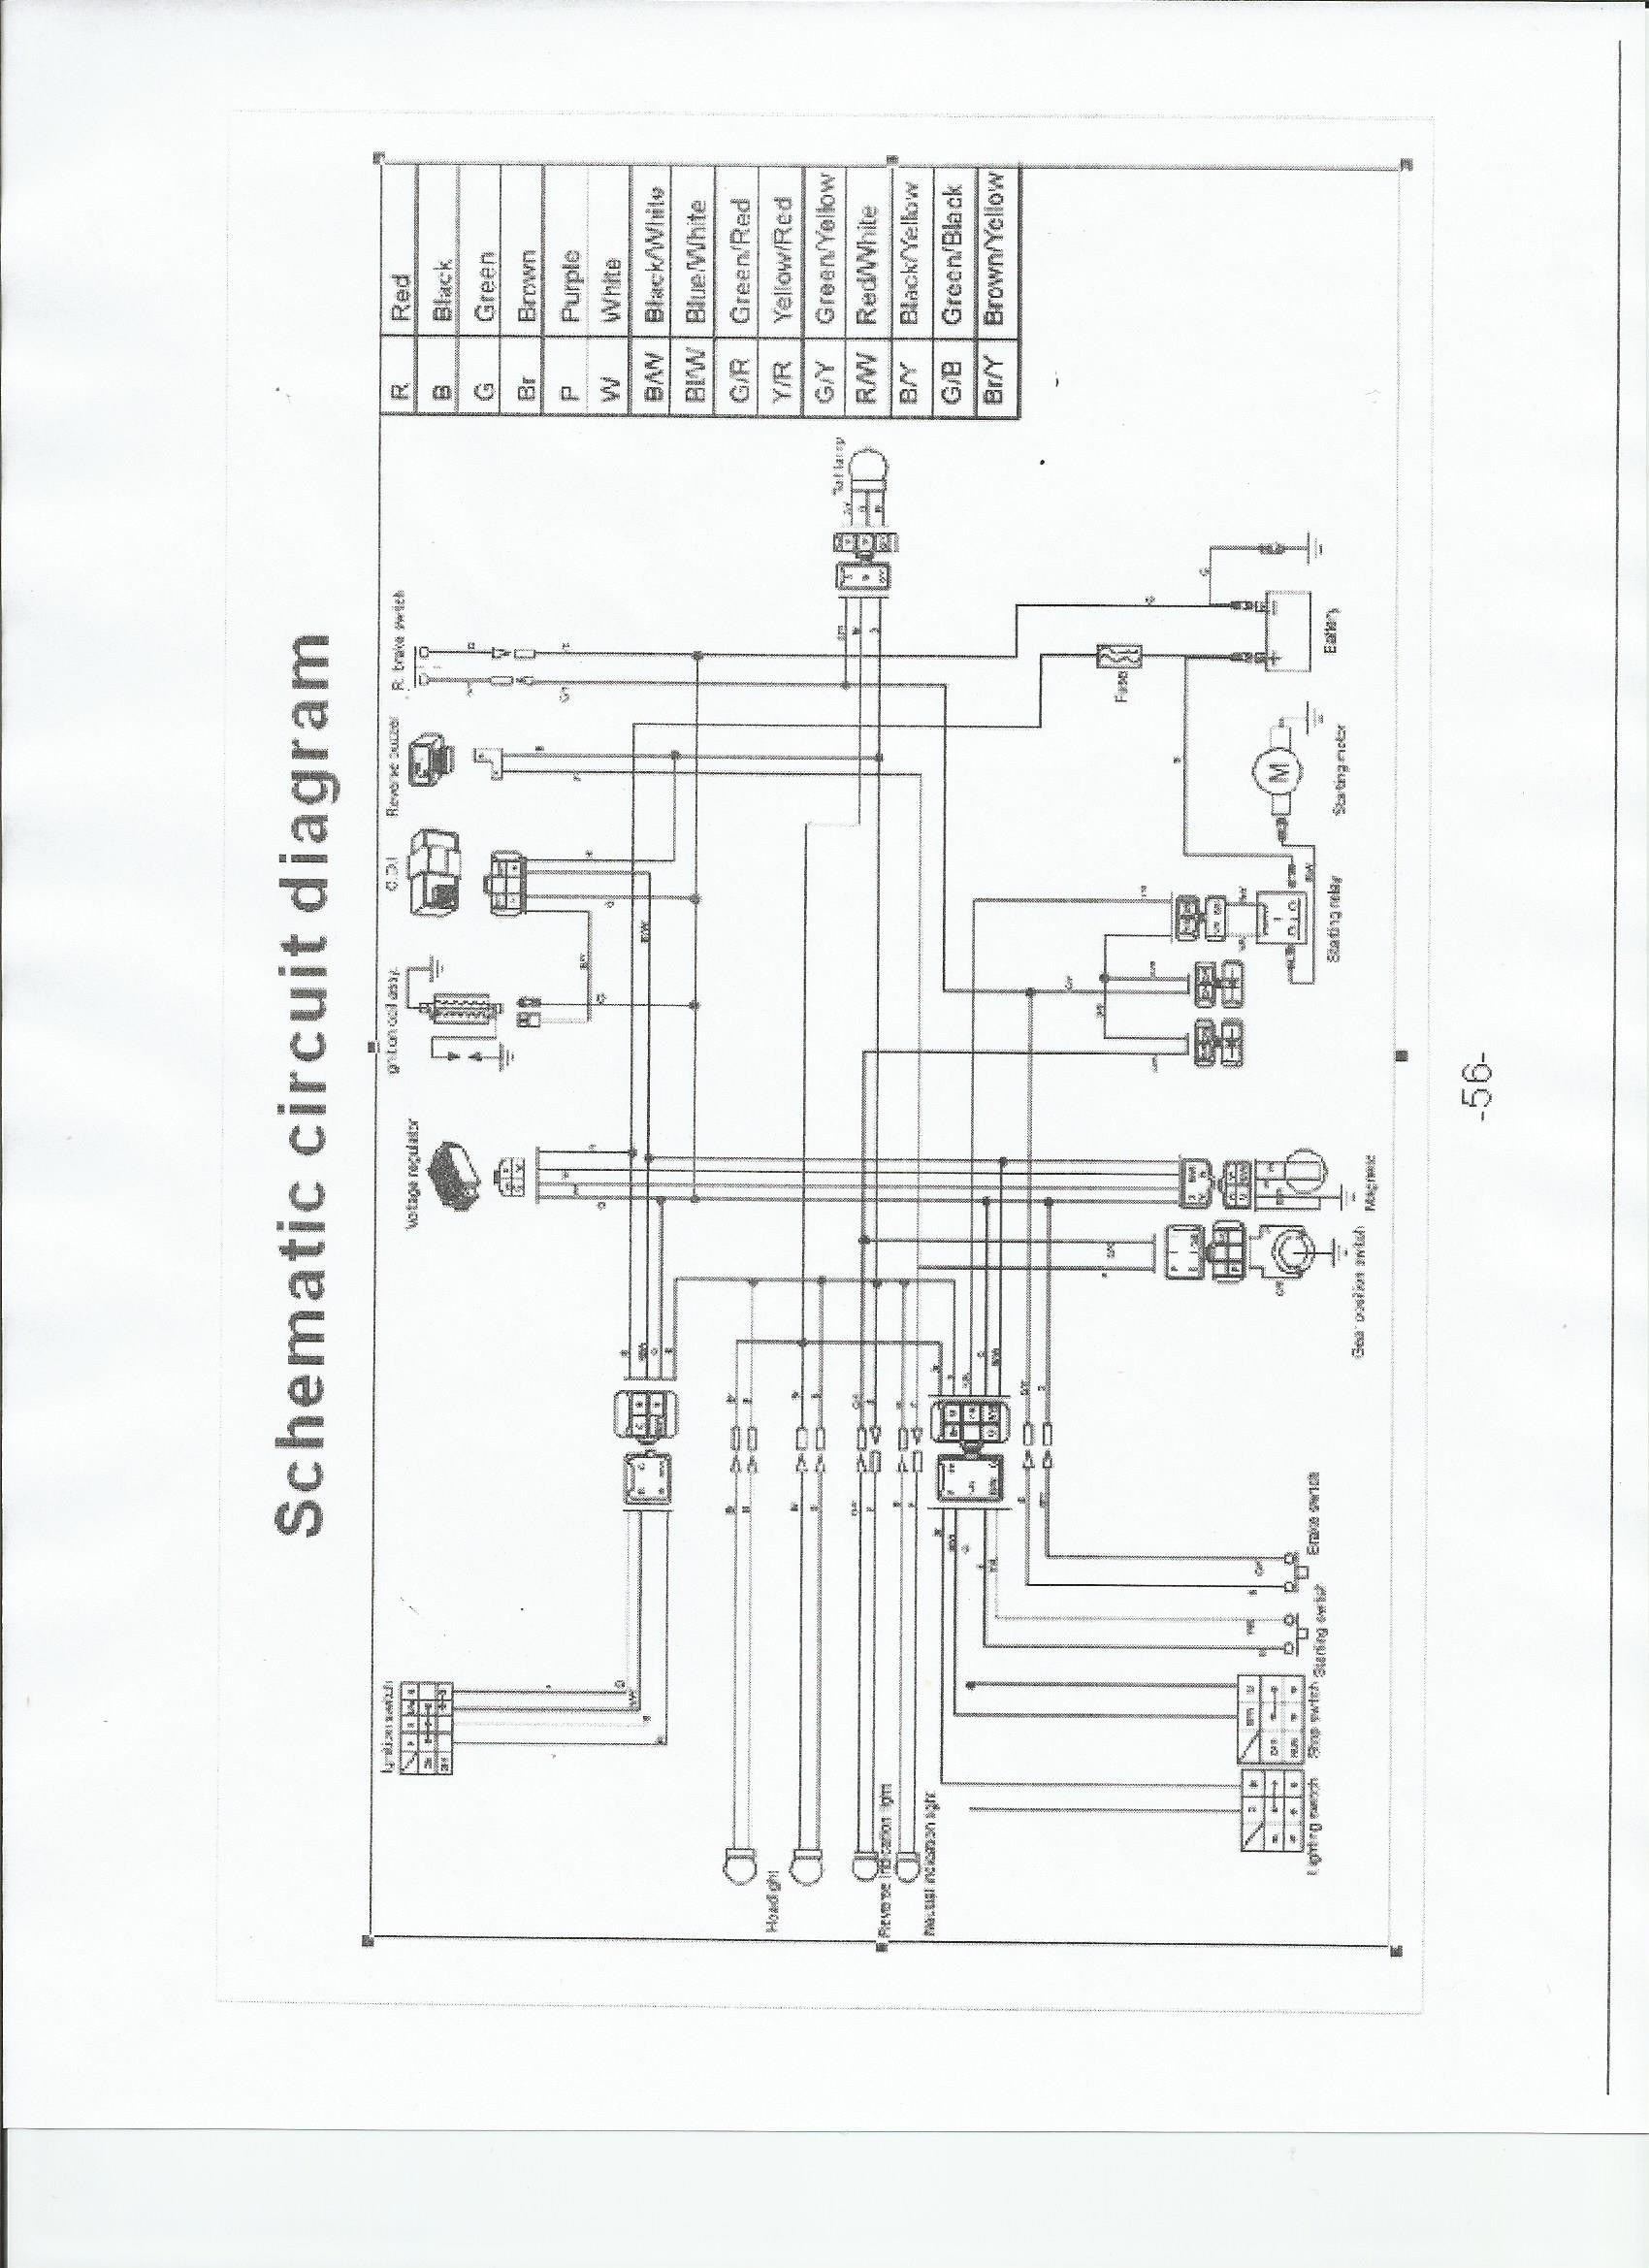 Chinese Atv Wiring Schematic 110cc